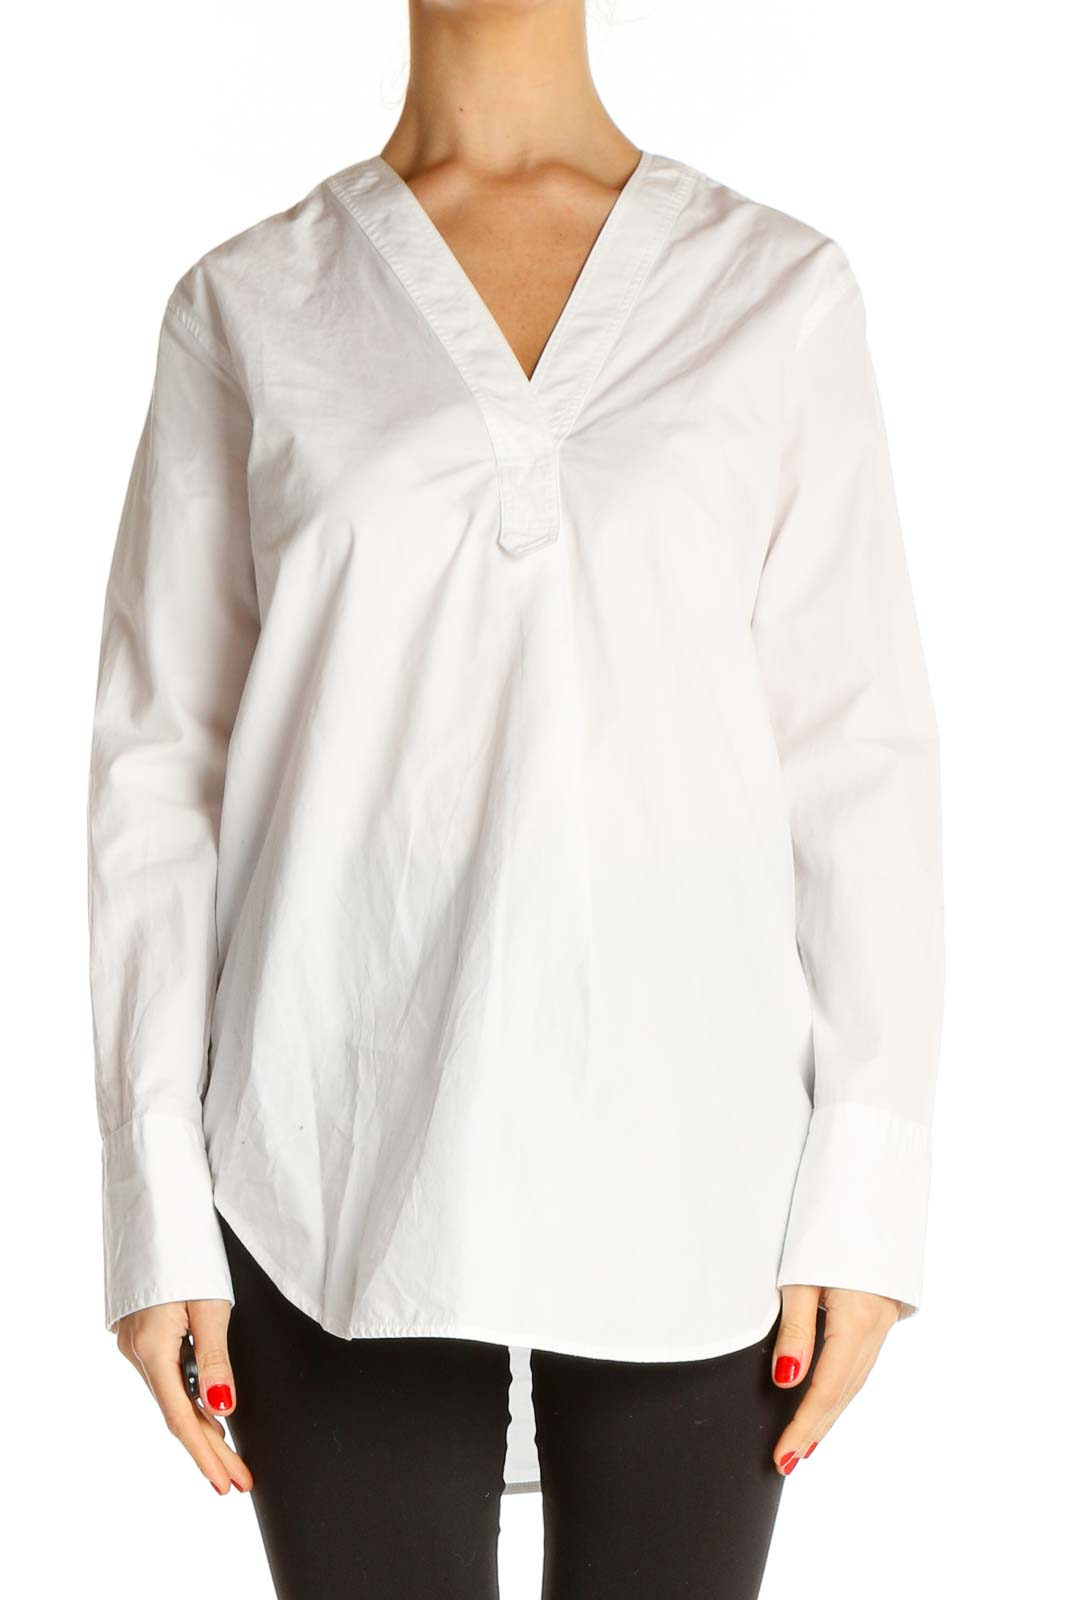 White Solid Work Blouse Front